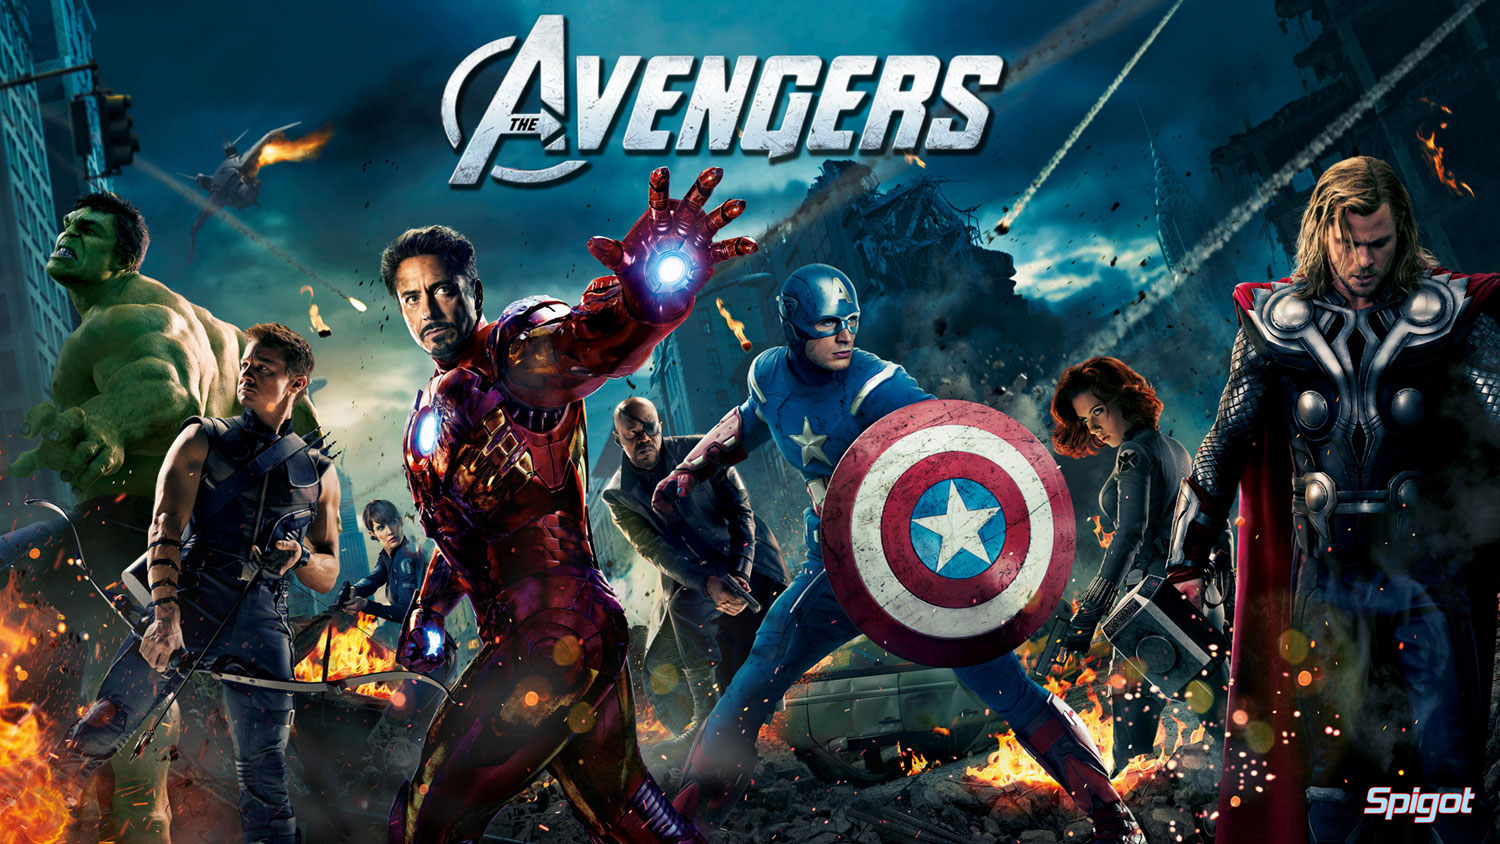 Joss Whedon directed this 2012 film and impressed superhero fans. The team of Avengers including the Hulk, Iron Man, Black Widow, Captain America, Thor and Hawkeye, are brought together in order to save the world. This film has all of our favorite characters in one place, making it a fan favorite. The acting is great, […]